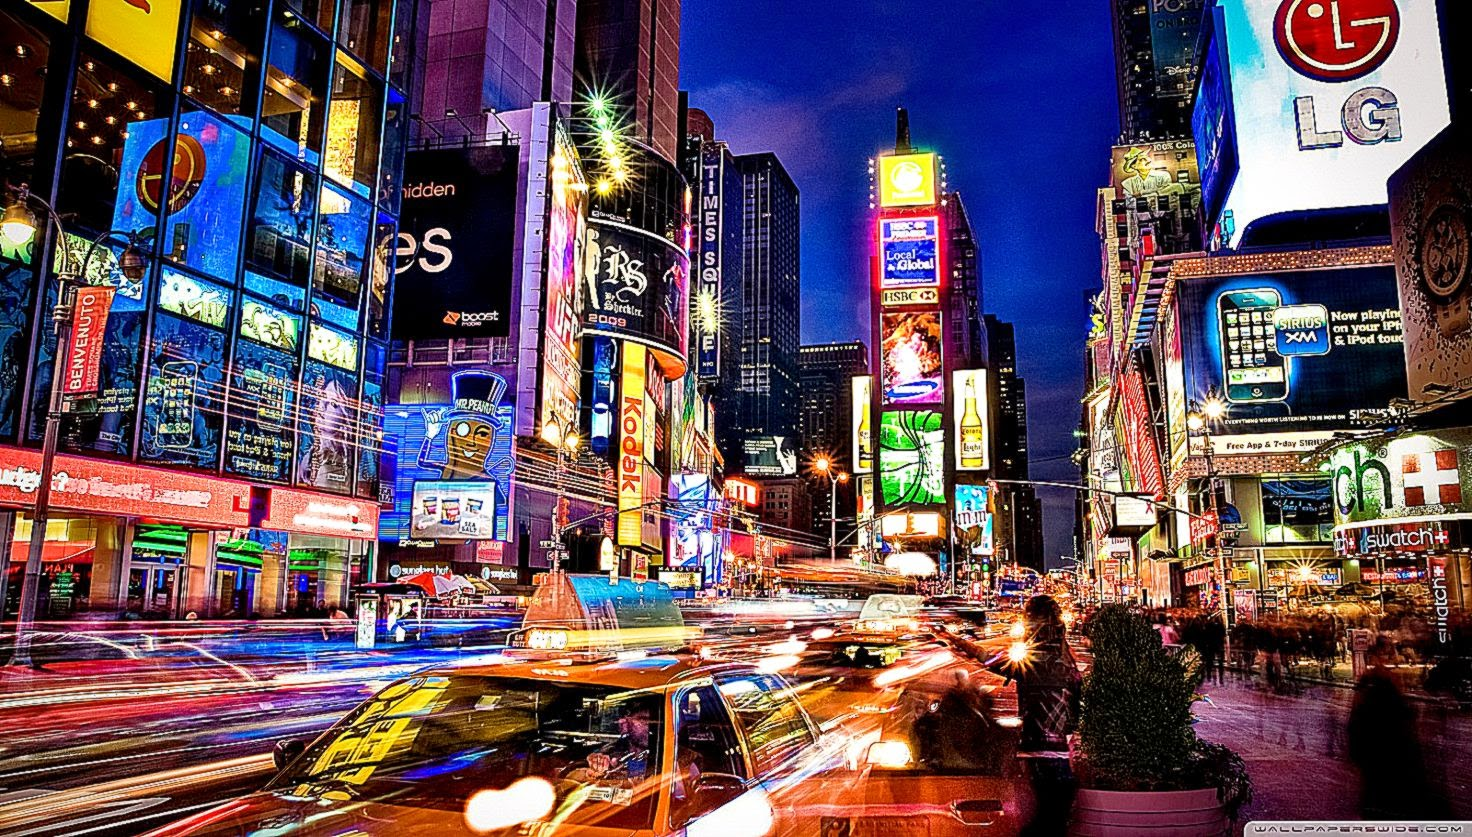 Best Free Hd Wallpaper New York City Wallpapers